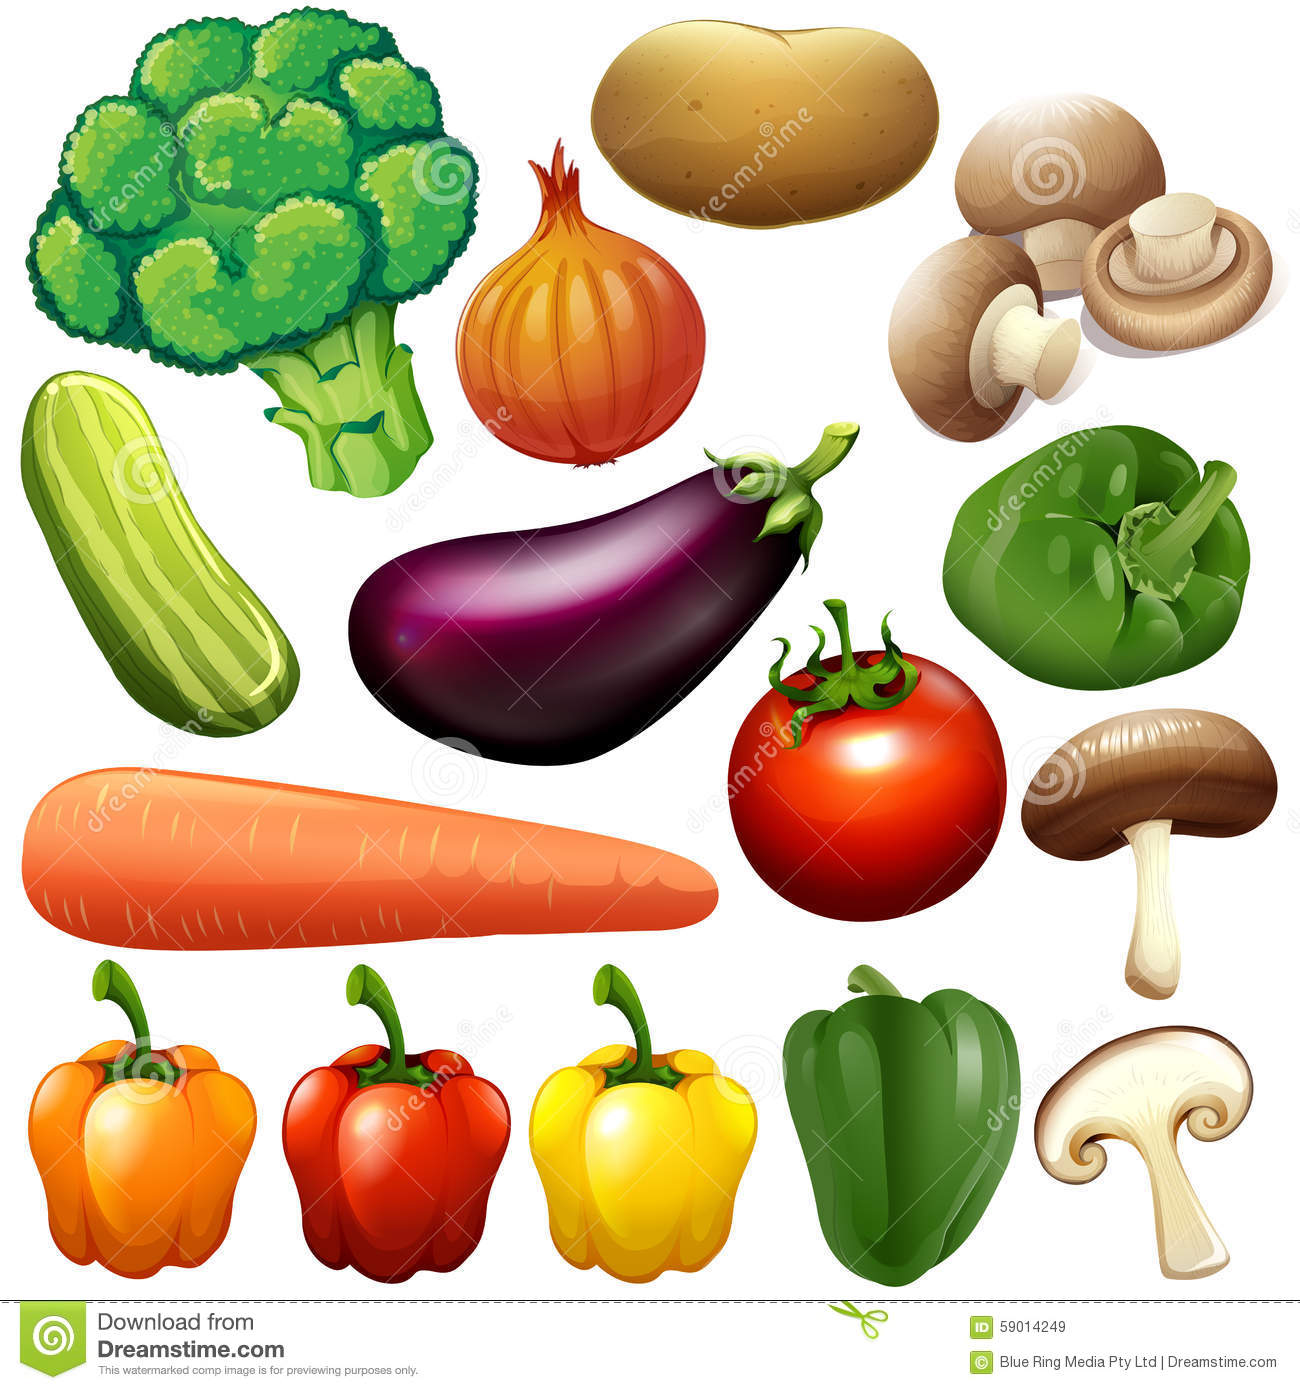 different kind of fresh vegetables stock illustration fungi clipart realistic graphic fungi clipart realistic graphic